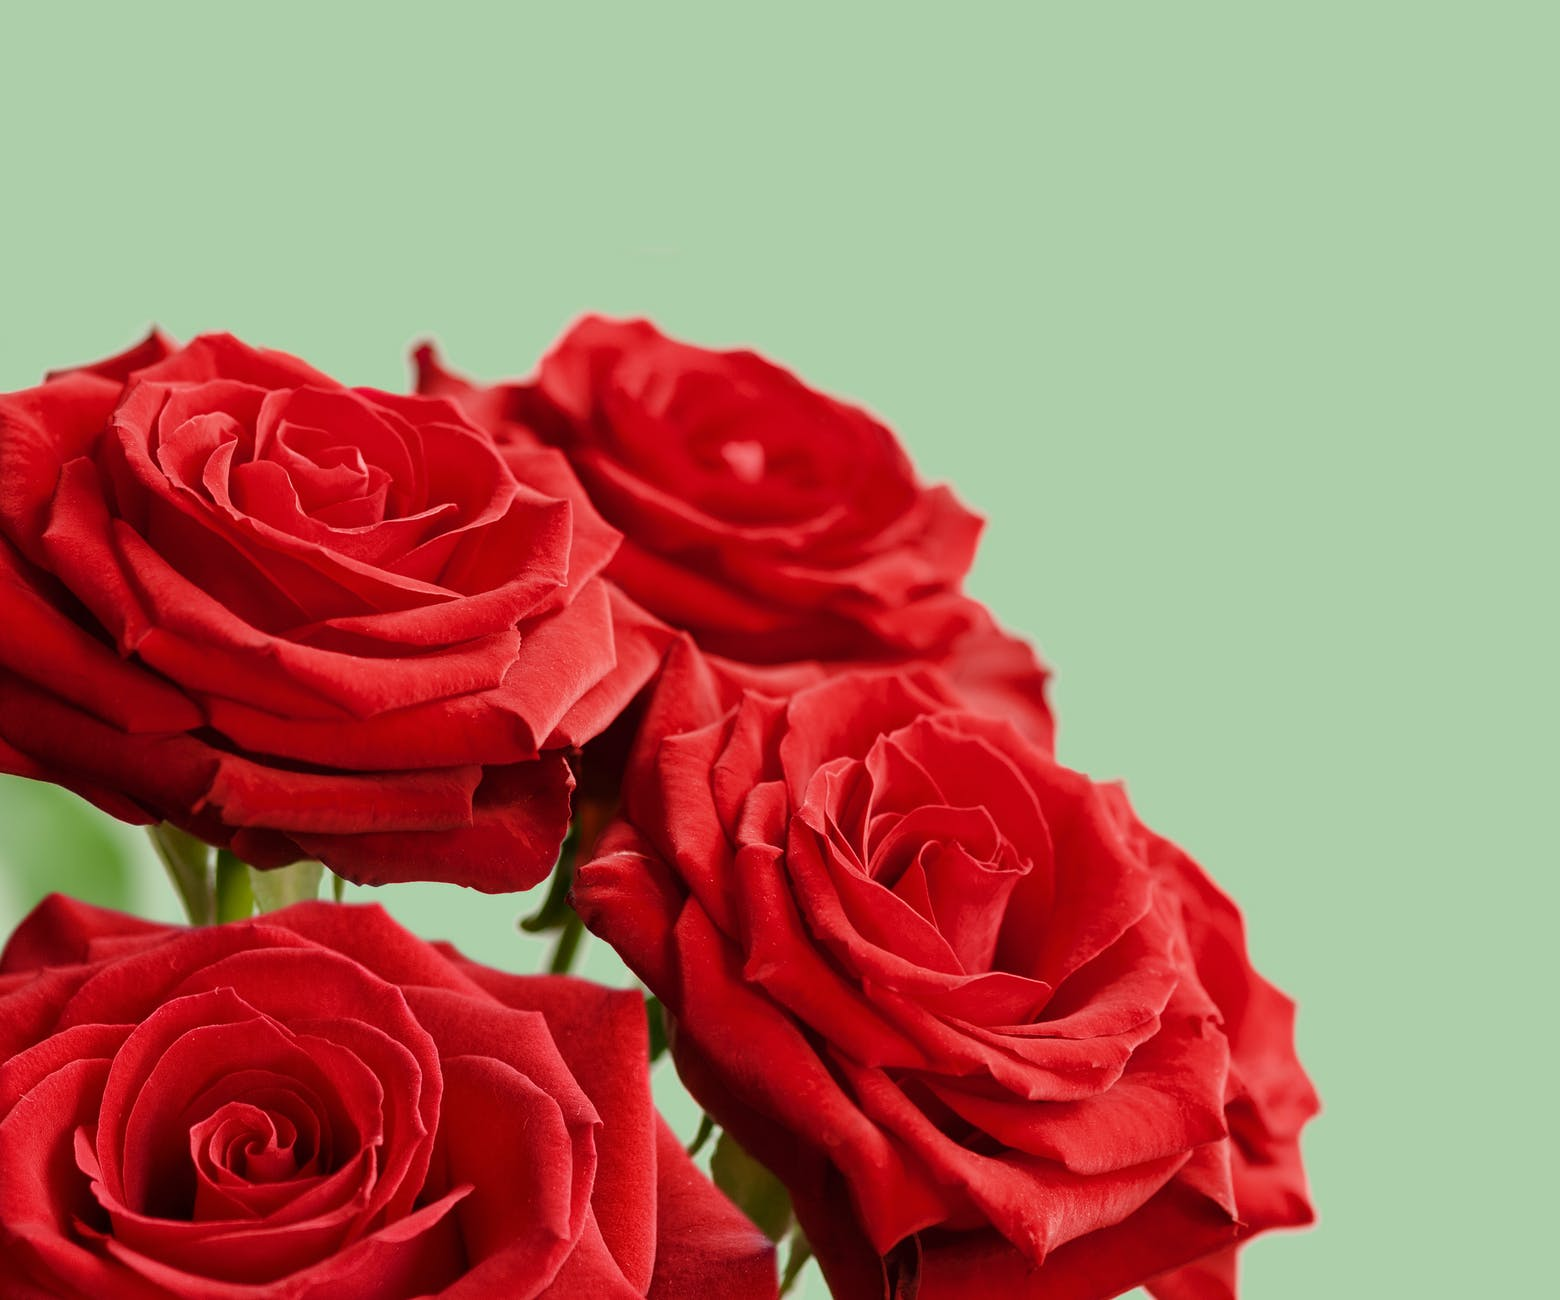 red rose flowers in close up view